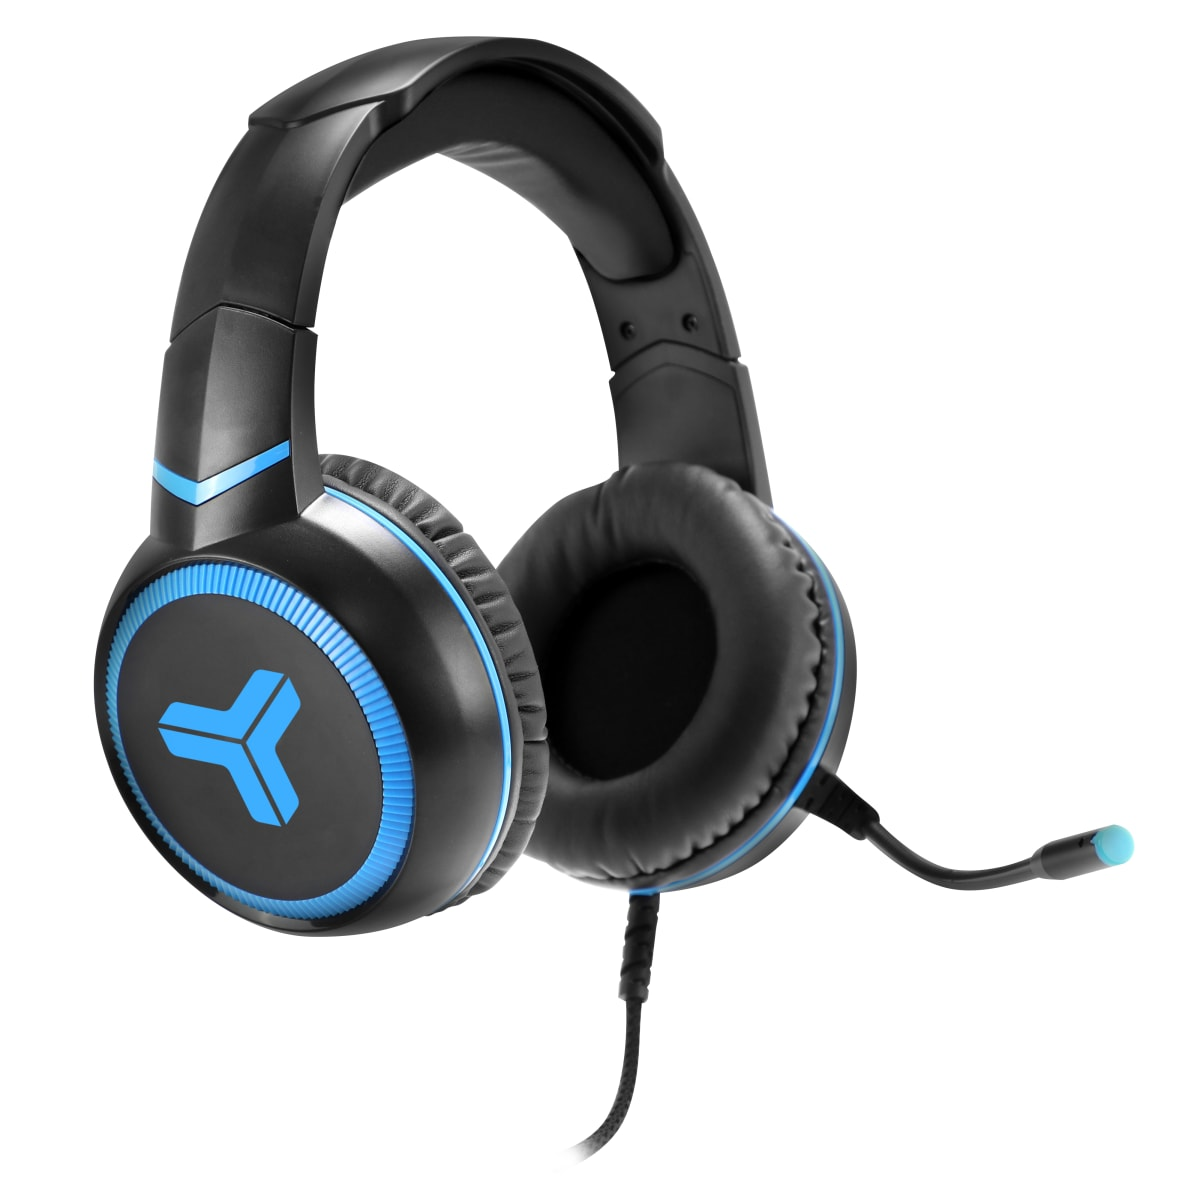 HY-100 gamer headset